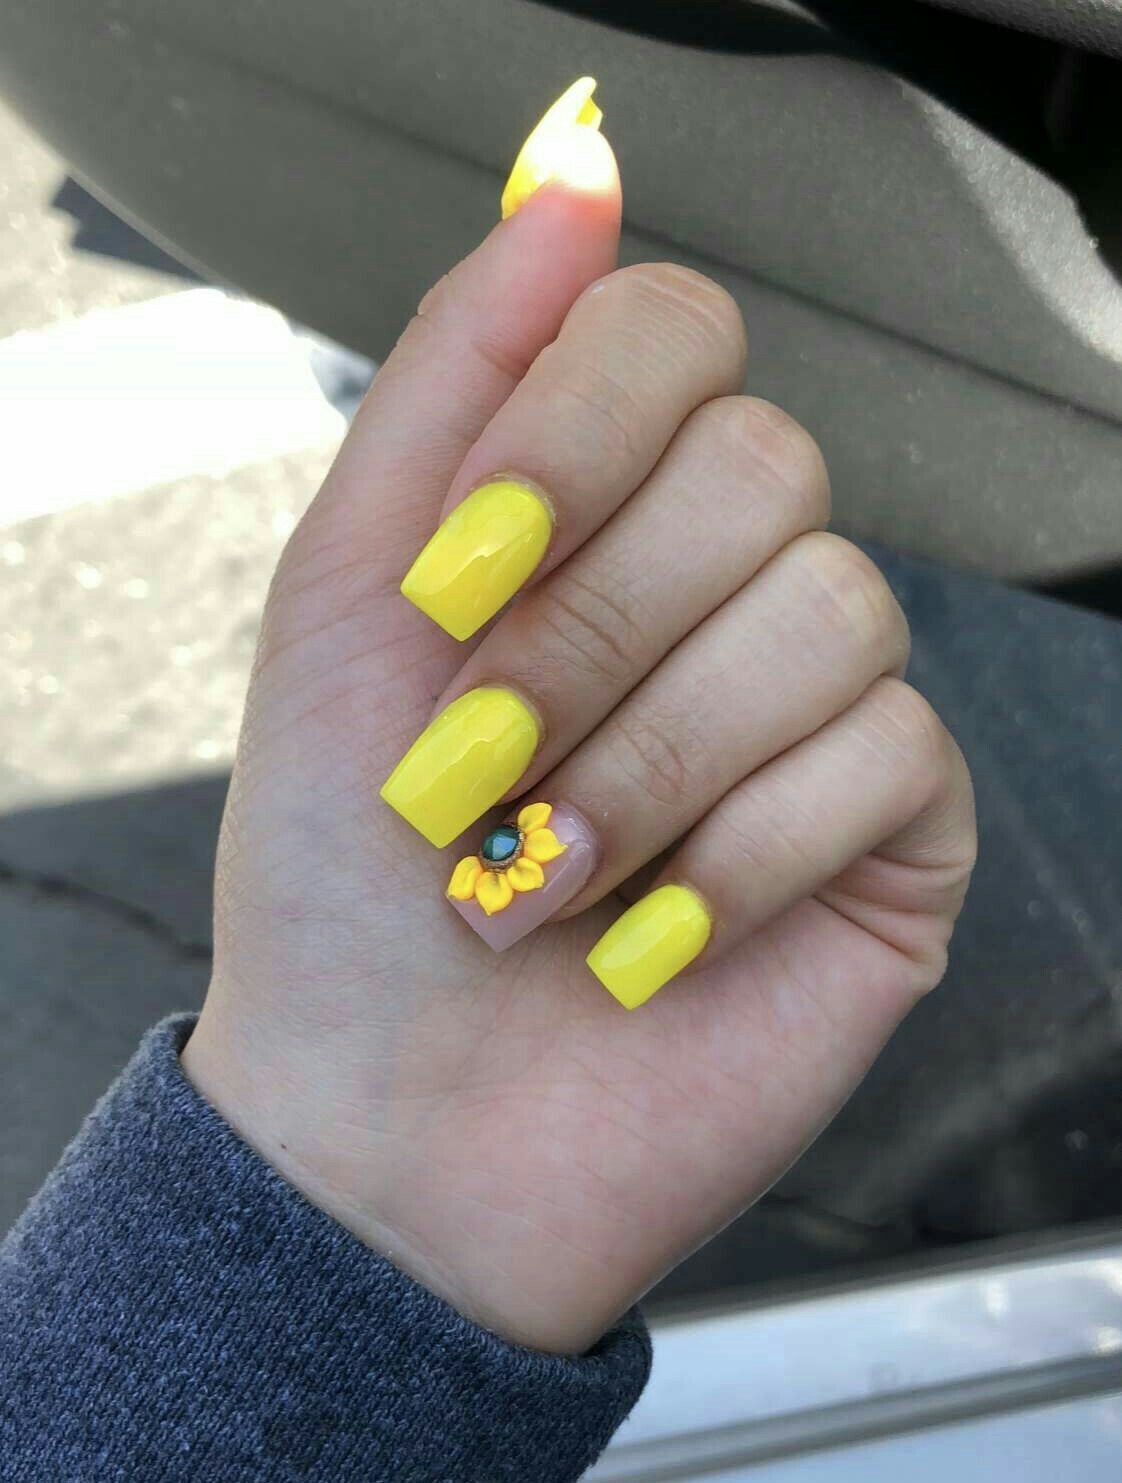 Pin by Michelle Sosa on nails